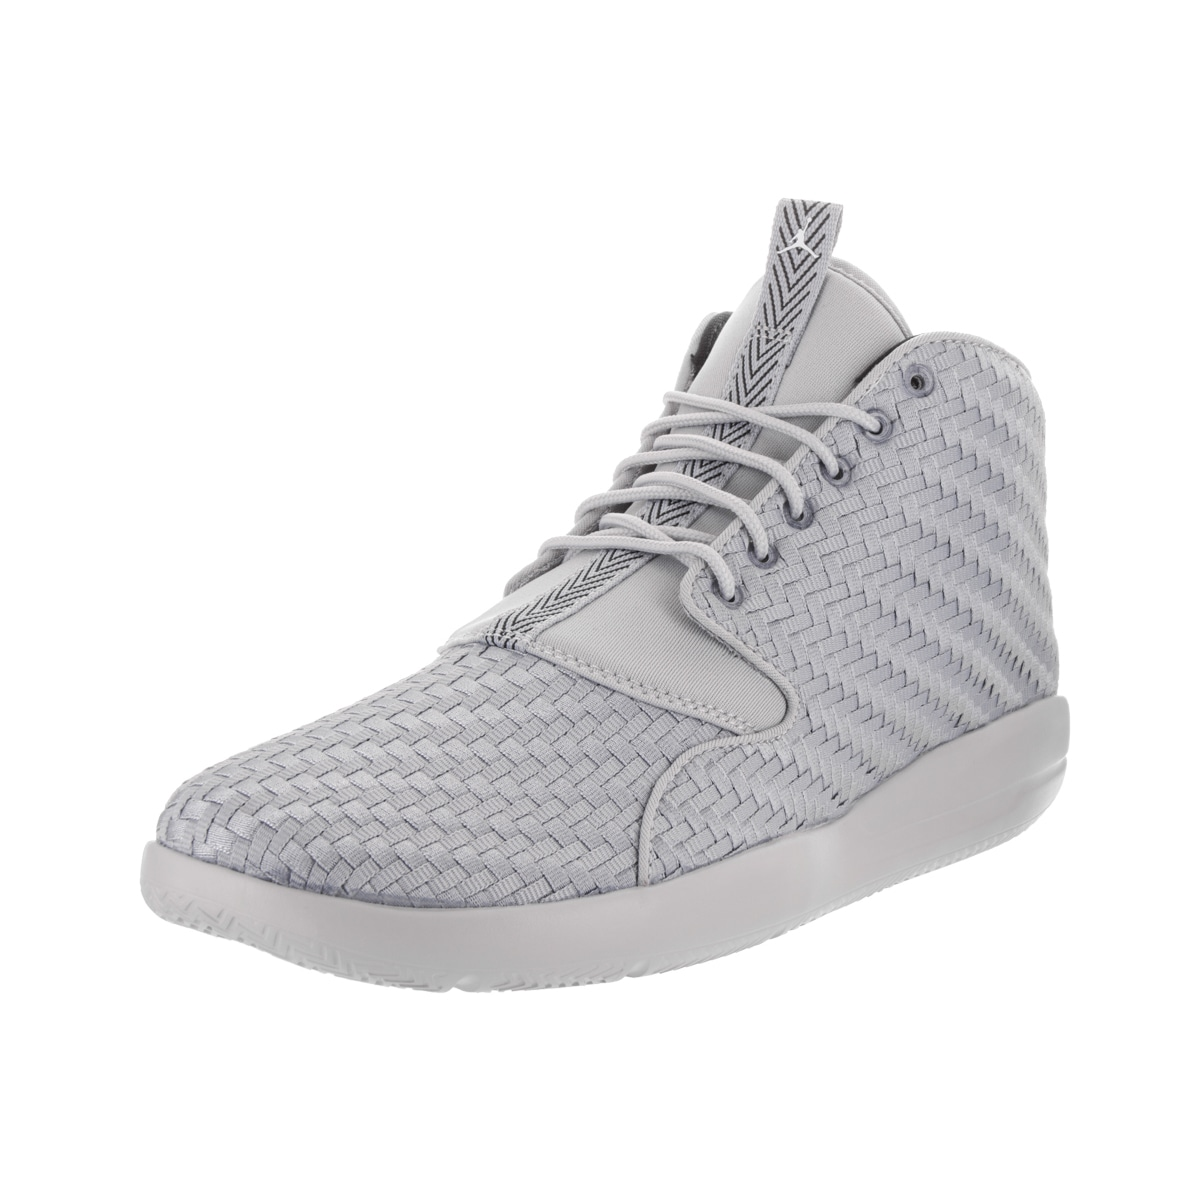 cdd0cee74e0559 Nike Jordan Men s Jordan Eclipse Chukka Grey Woven Textile Basketball Shoes